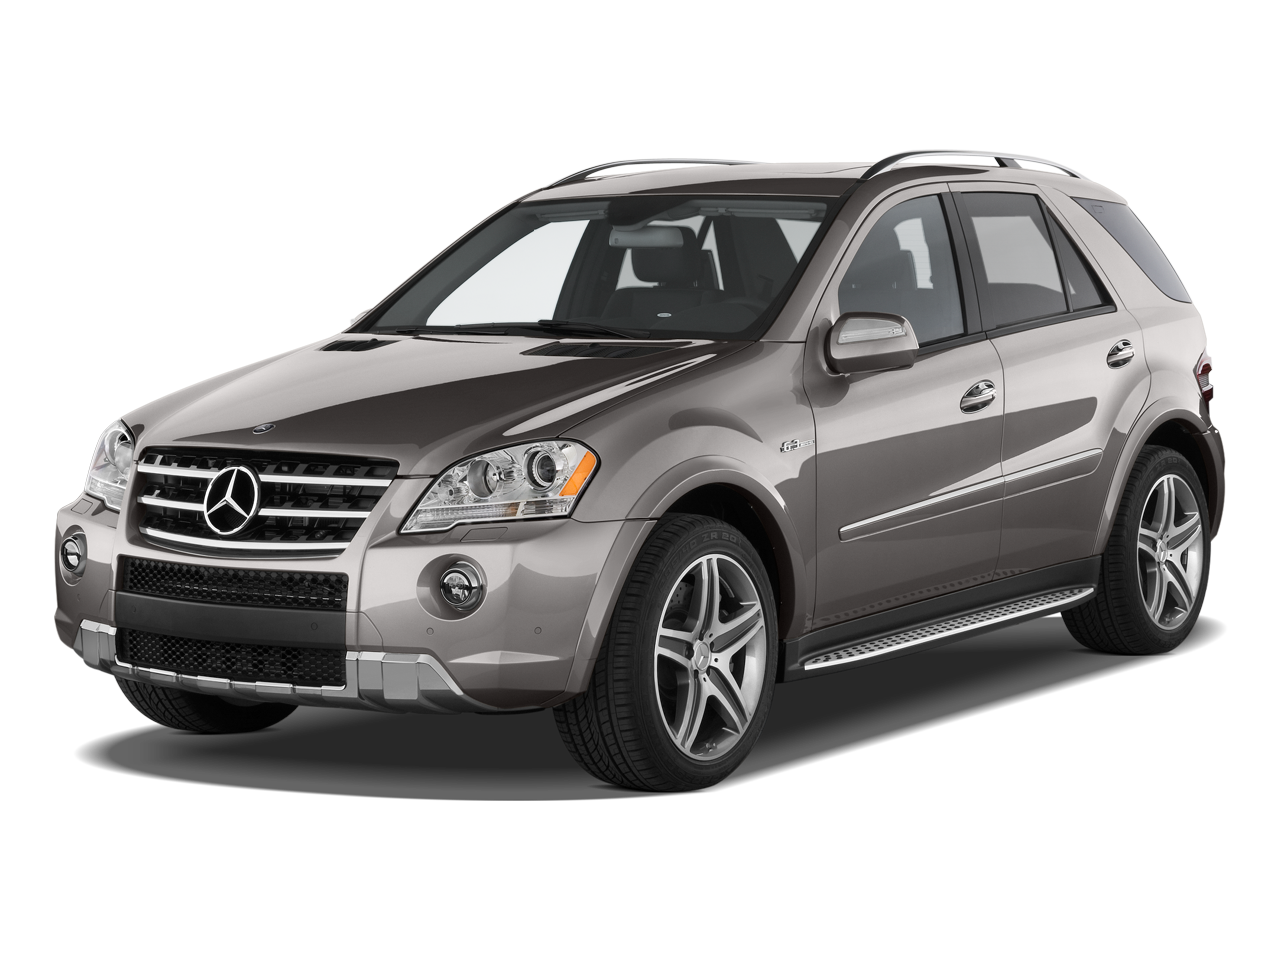 2009 mercedes benz ml320 bluetec mercedes benz crossover for Mercedes benz cross over